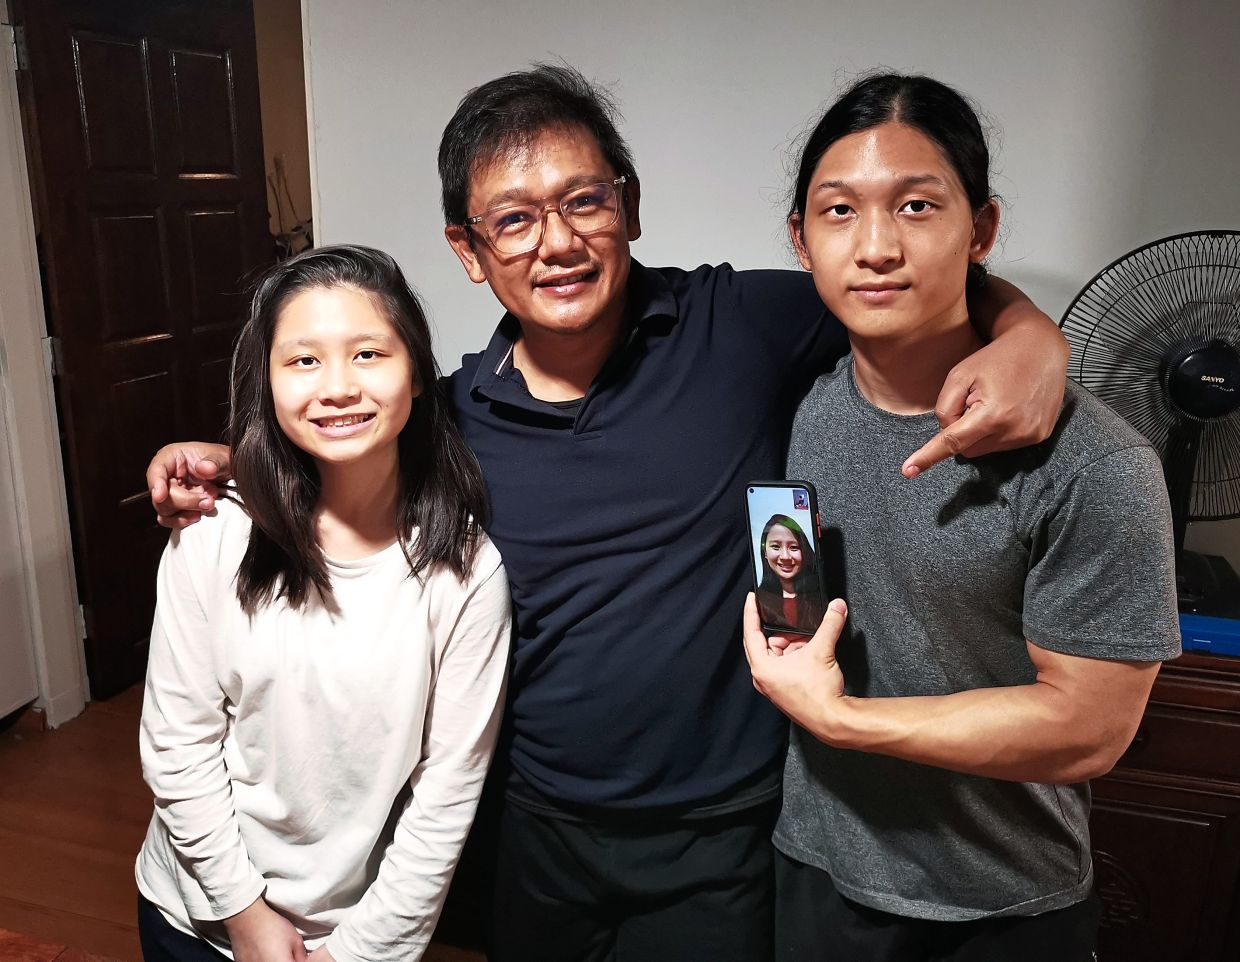 Staying in touch: Video calls are a weekly thing for Sharizan (centre) and (from left) younger daughter Kaylin, son Kayden and elder daughter Kayra (on Zoom from Australia). Photo: Sharizan Borhan